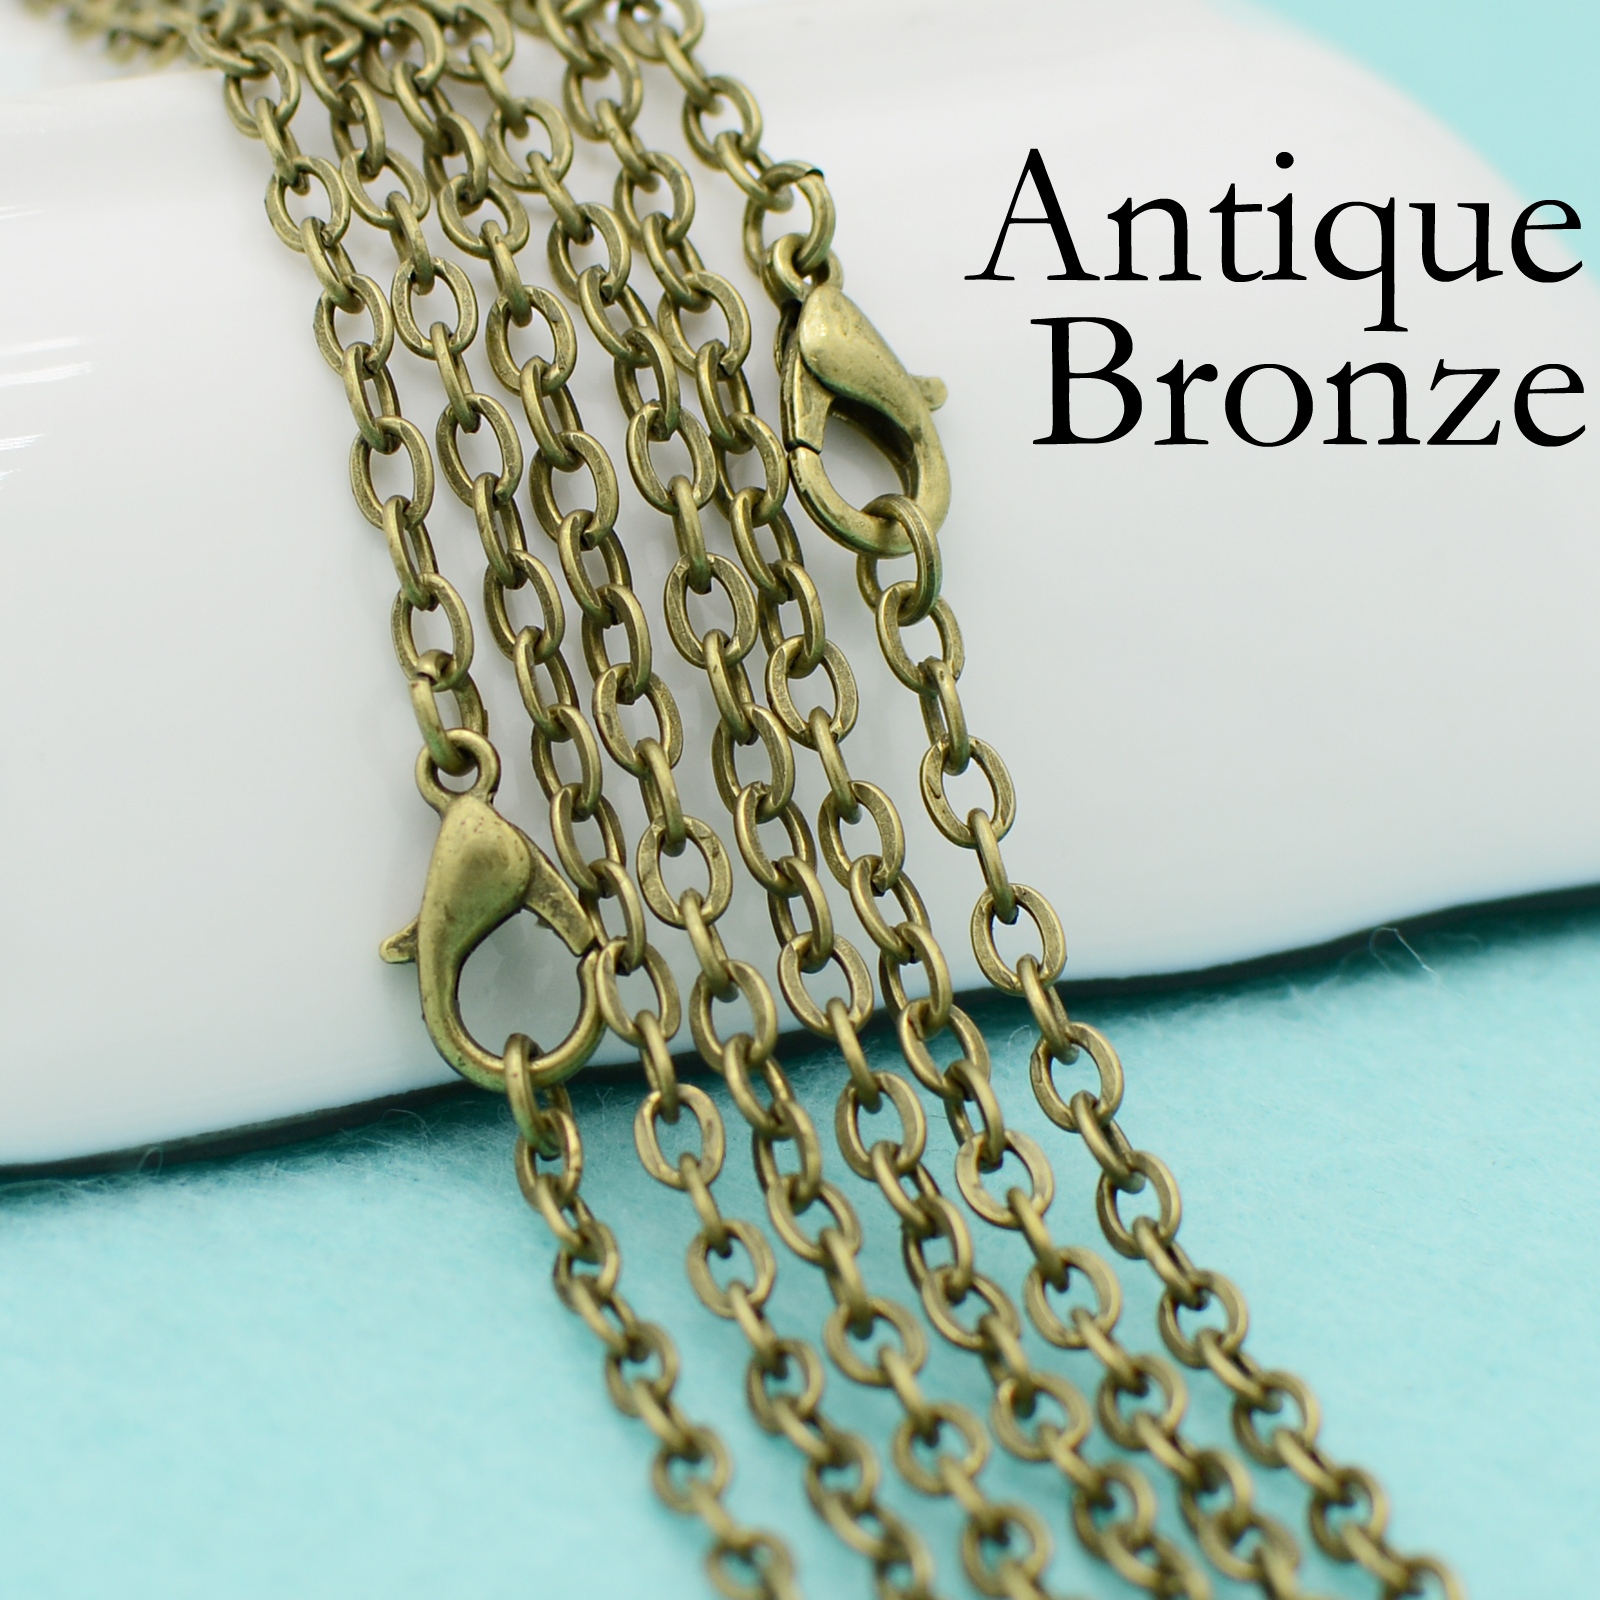 20 Inch Antiqued Gold Brass Cable Chain Necklace With Lobster Clasp